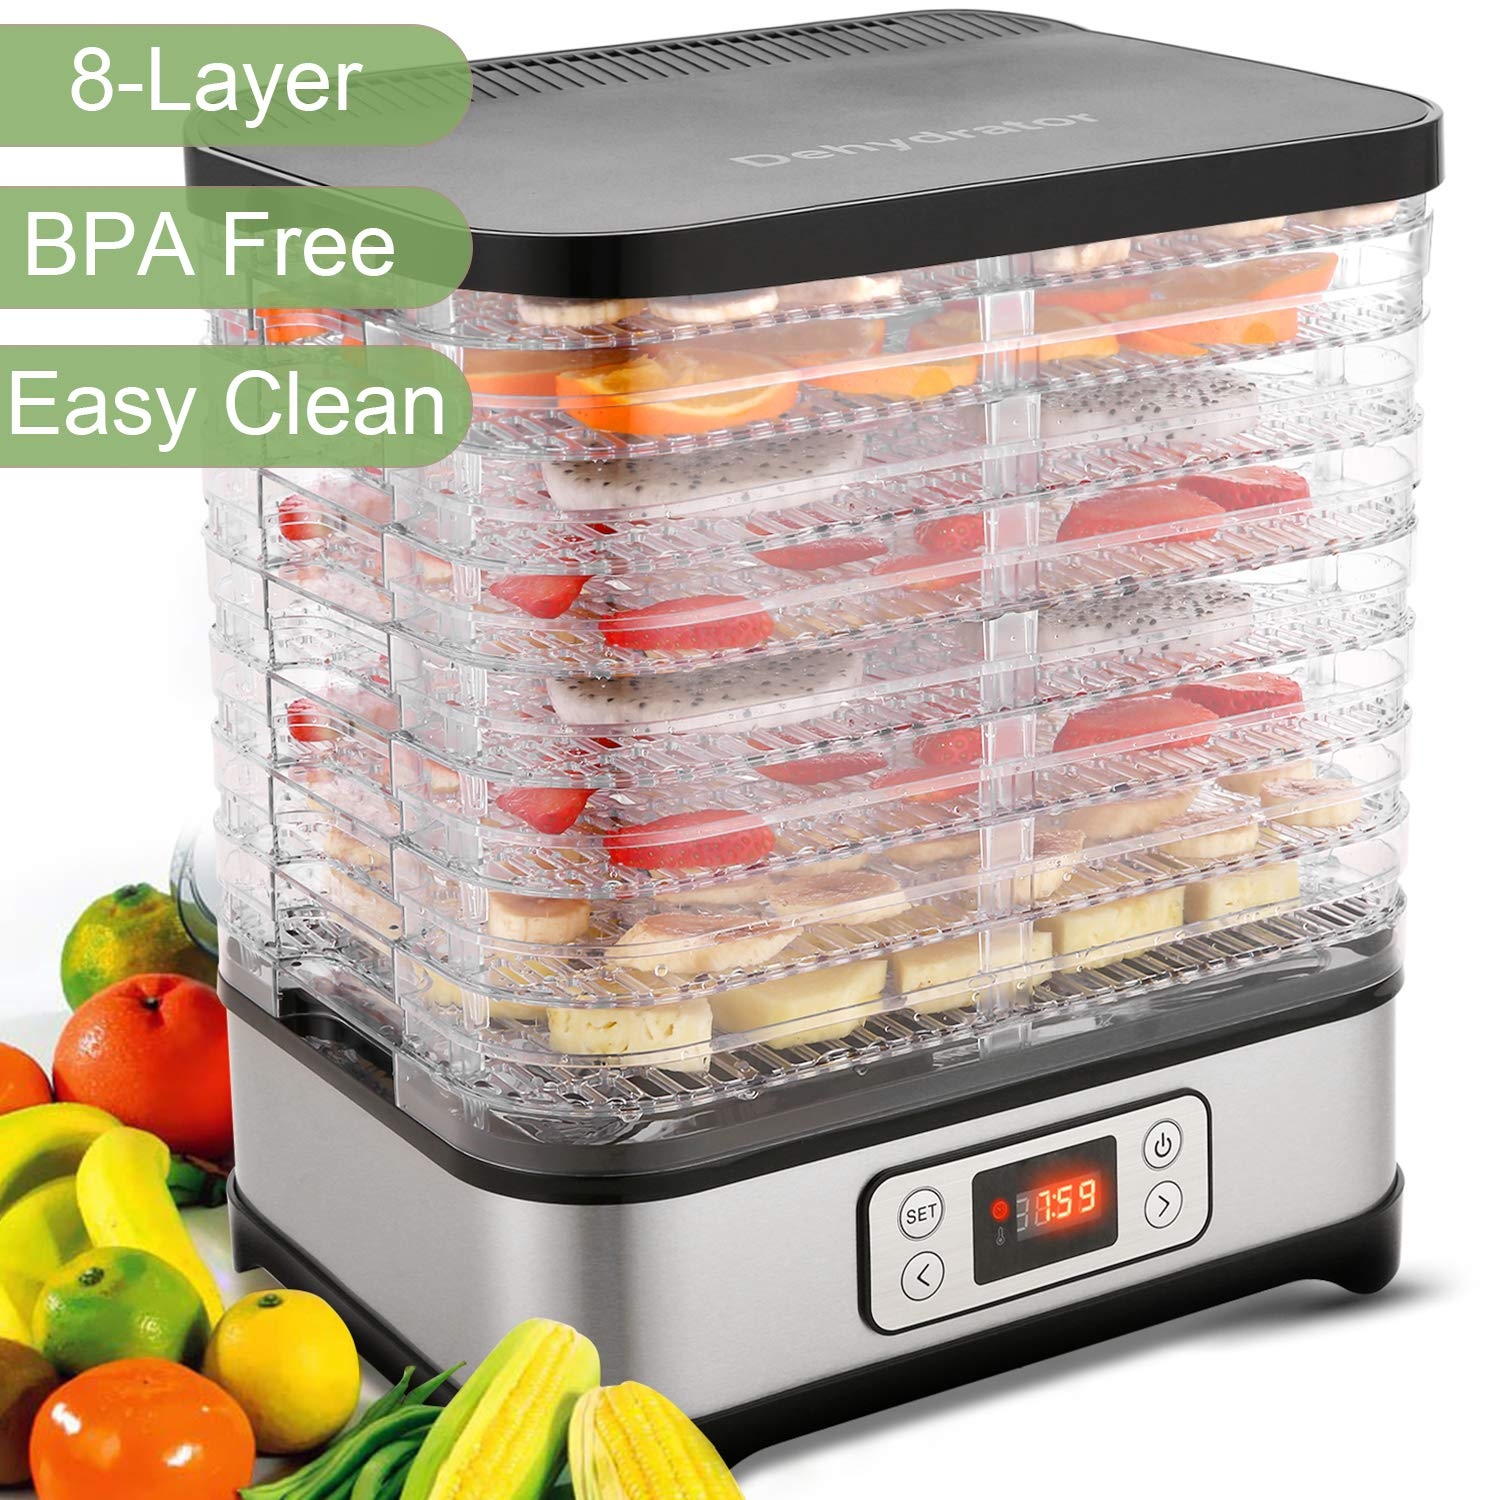 Food Dehydrator Machine – Jerky Dehydrators with 8 Trays, Digital Timer and Temperature Control BPA Free, 400Watt